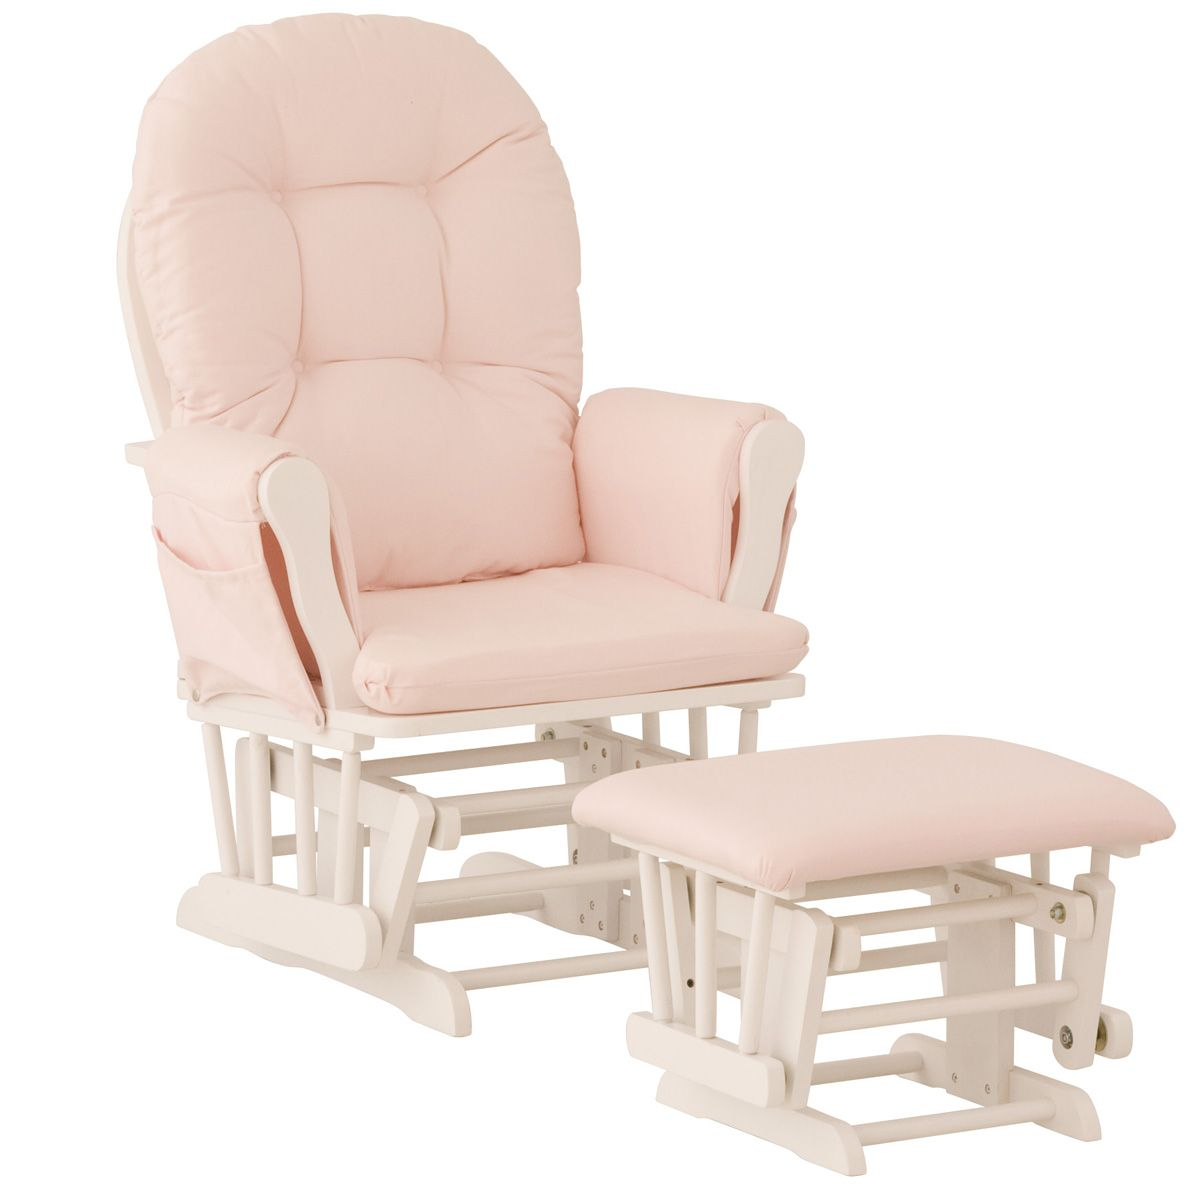 rocking chair for nursery storkcraft hoop glider u0026 ottoman - white/pink DKNFUMZ